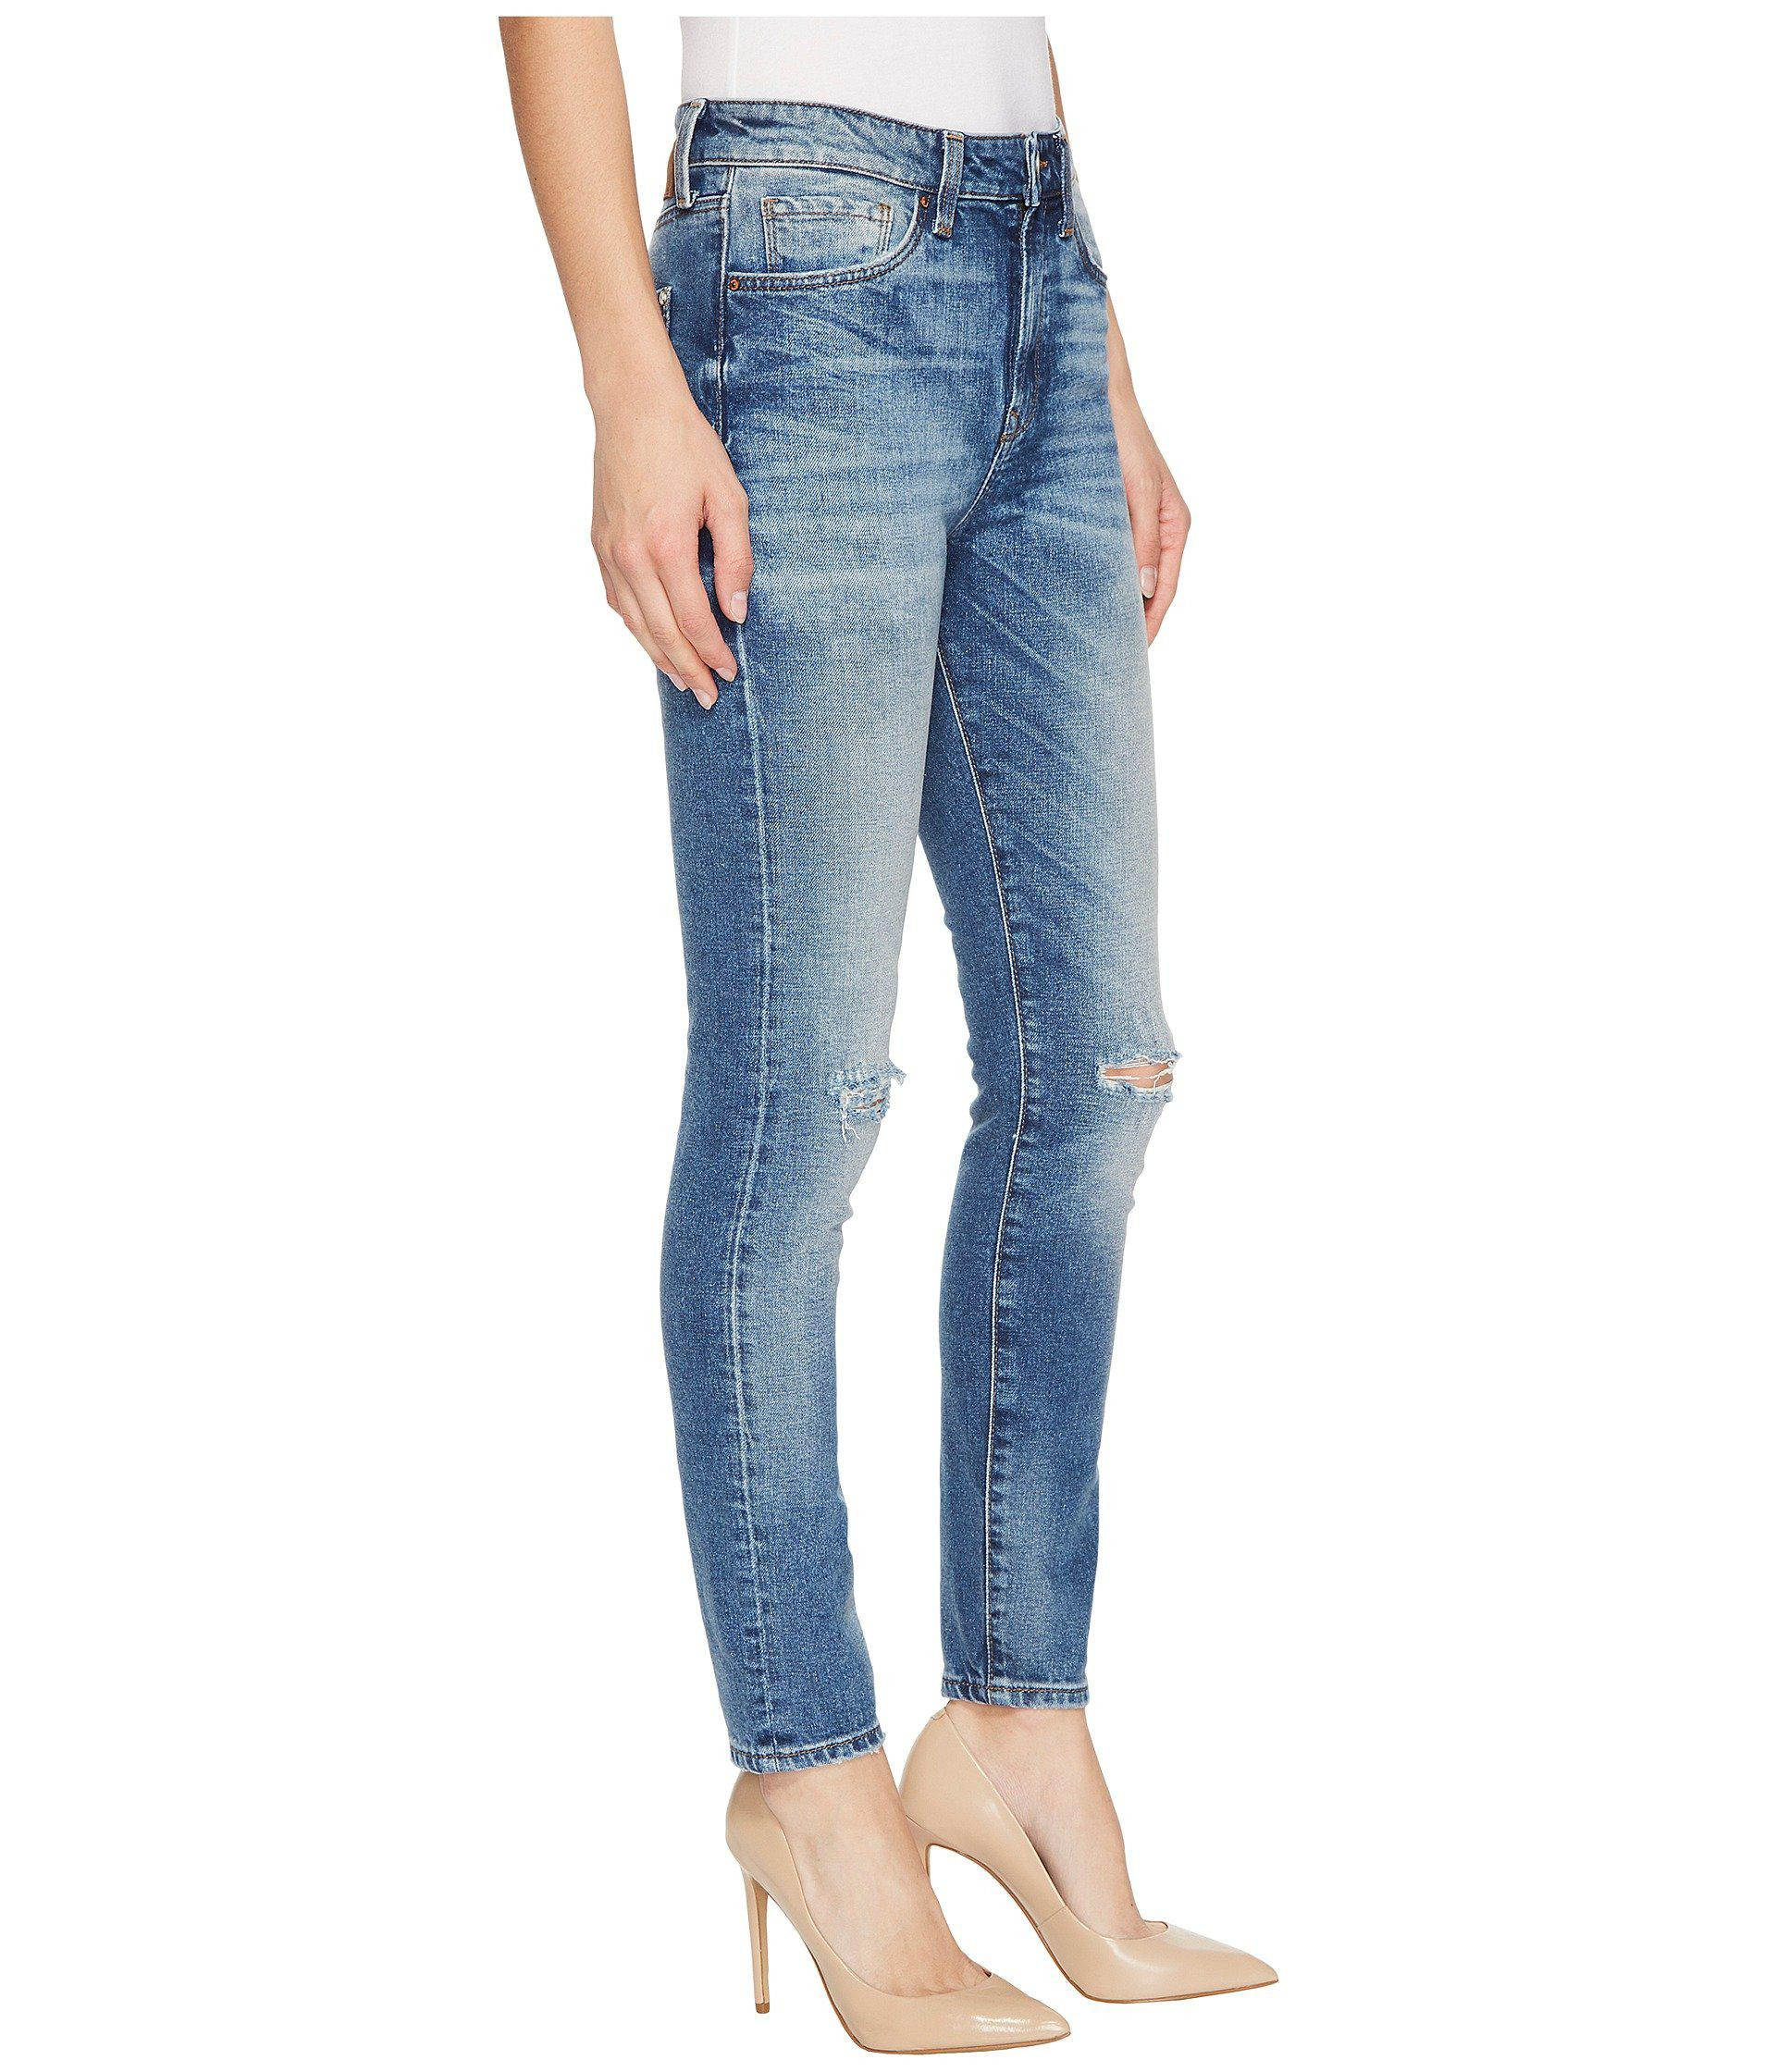 b4f674ab435 Mavi Jeans Lucy In Foggy Ripped Vintage in Blue - Lyst